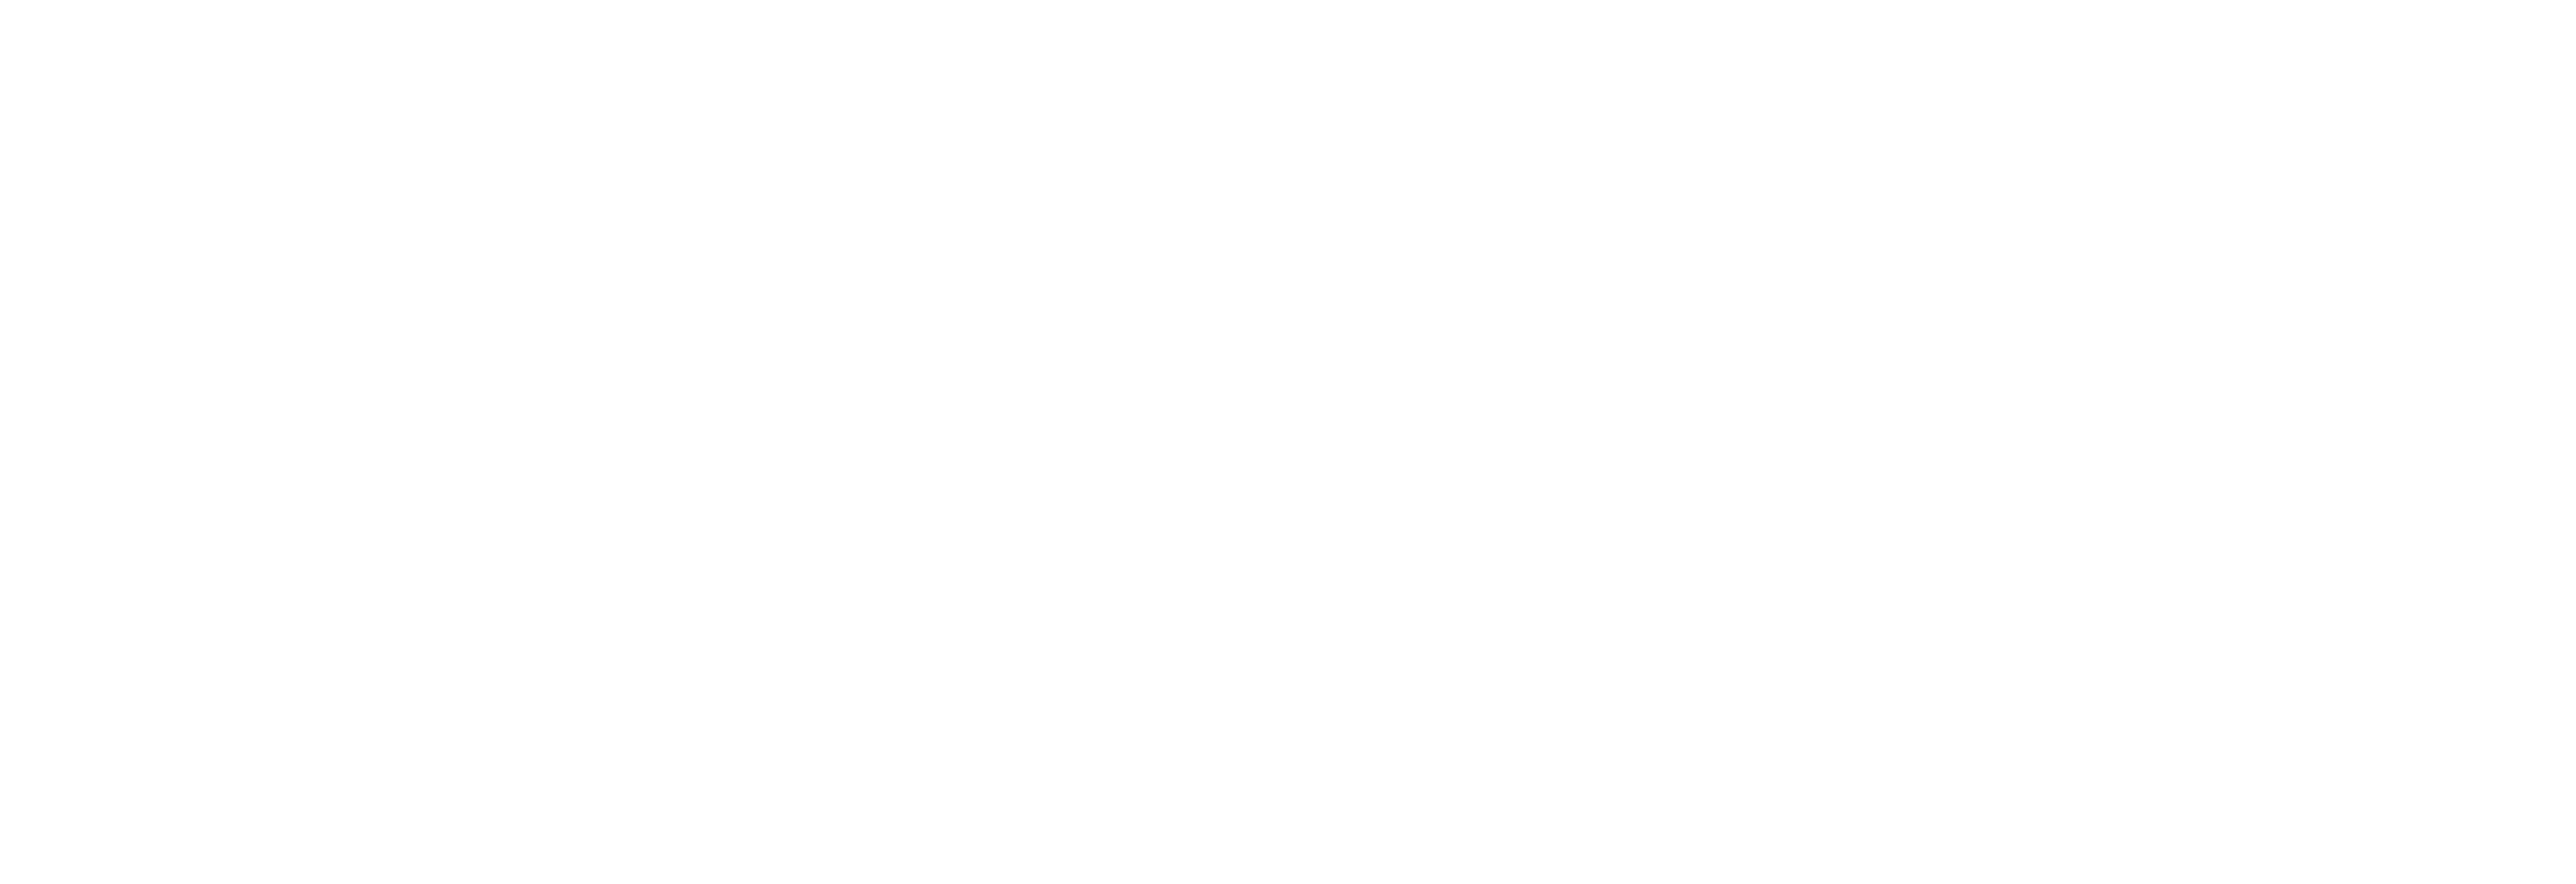 Easterseals New Hampshire | Employees Only